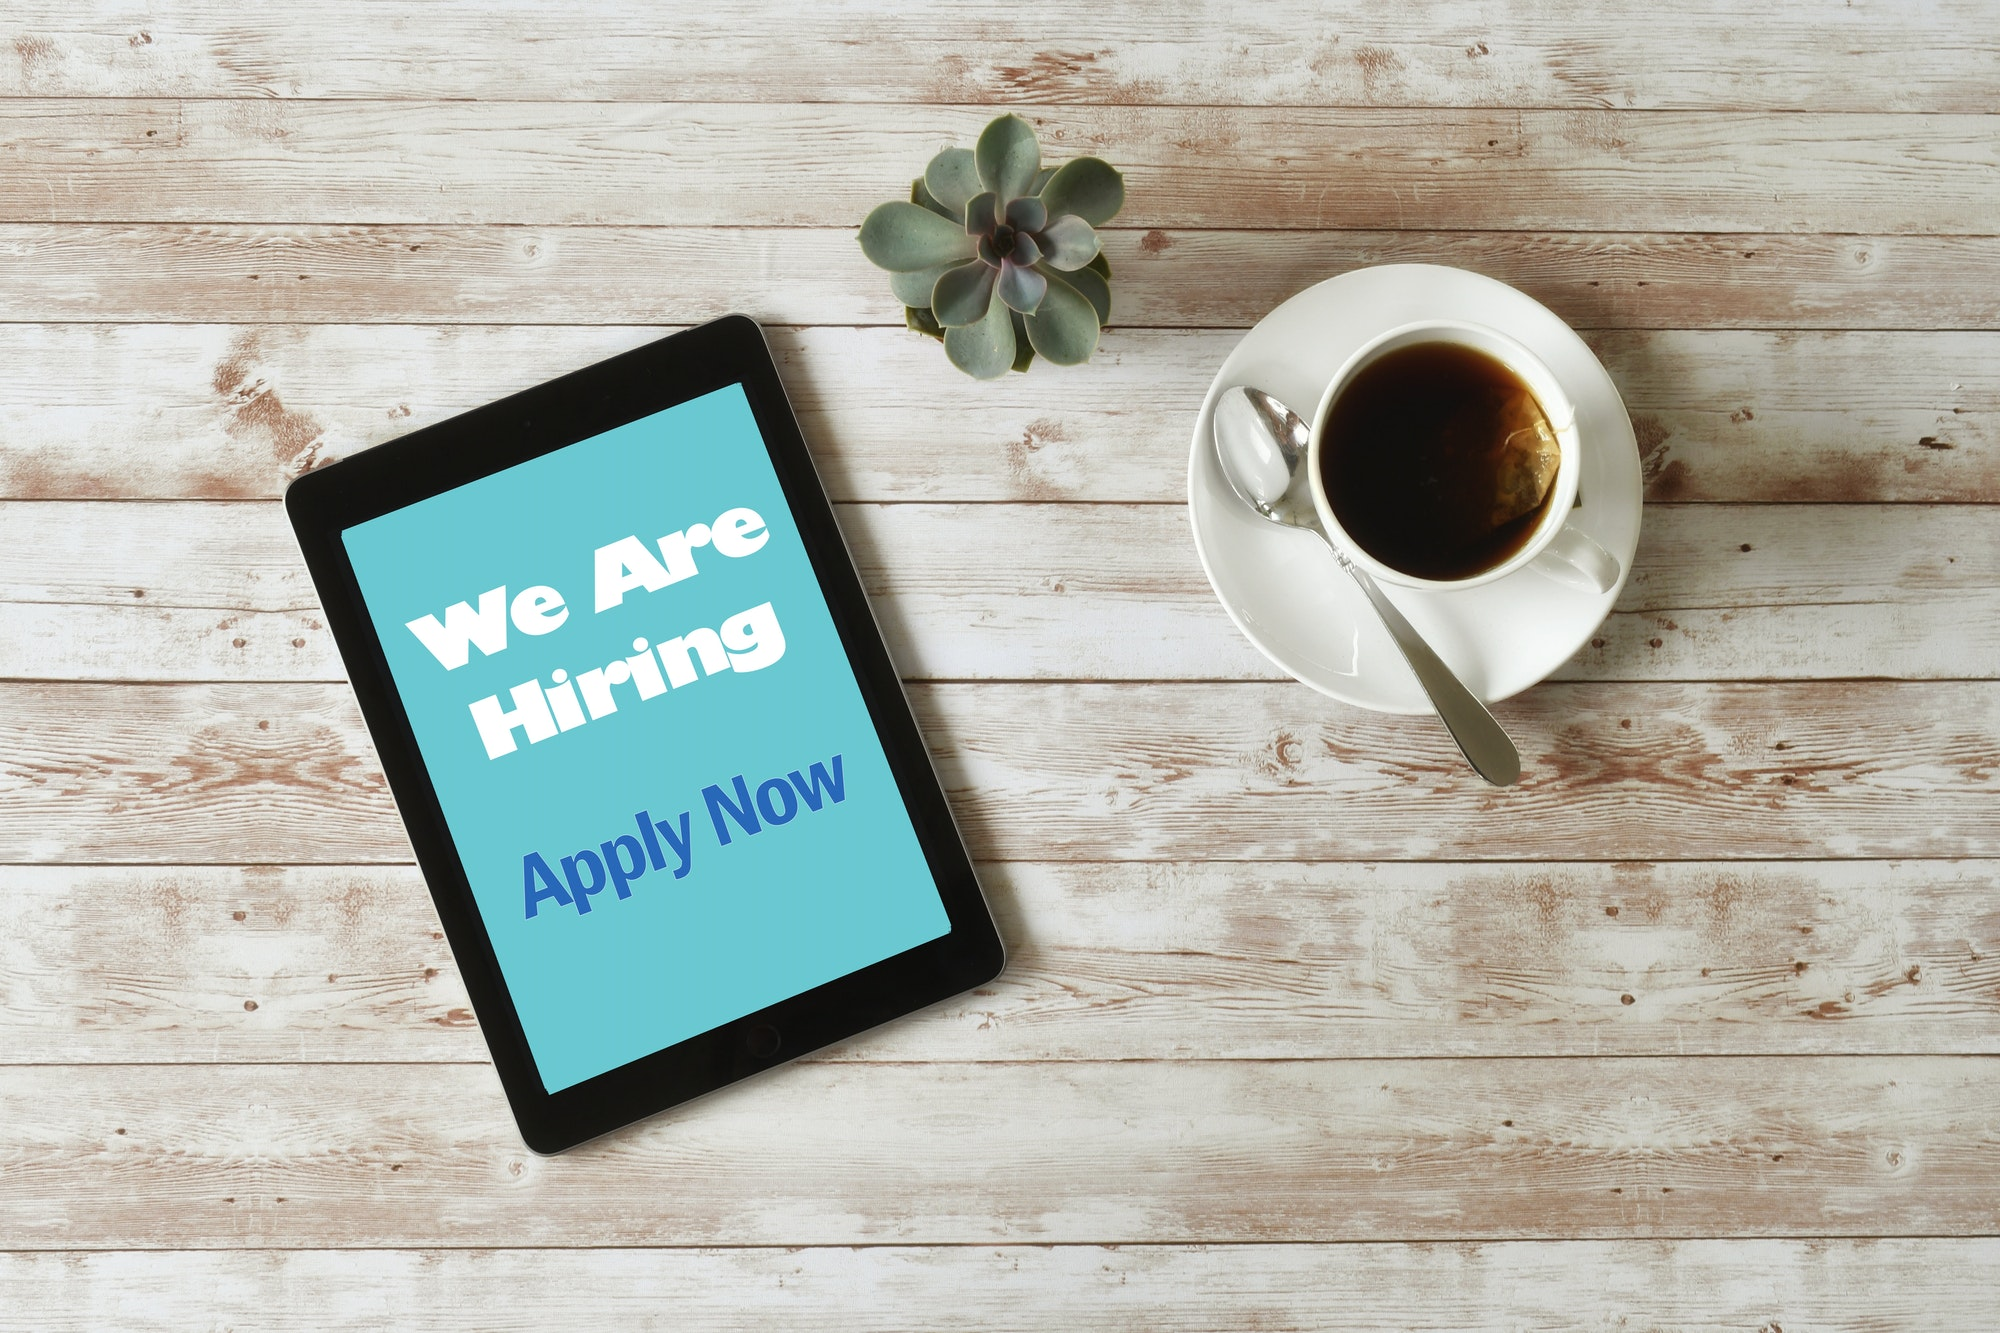 Online Job Search - We are Hiring Apply Now on tablet screen, minimal desk, overhead high angle iPad